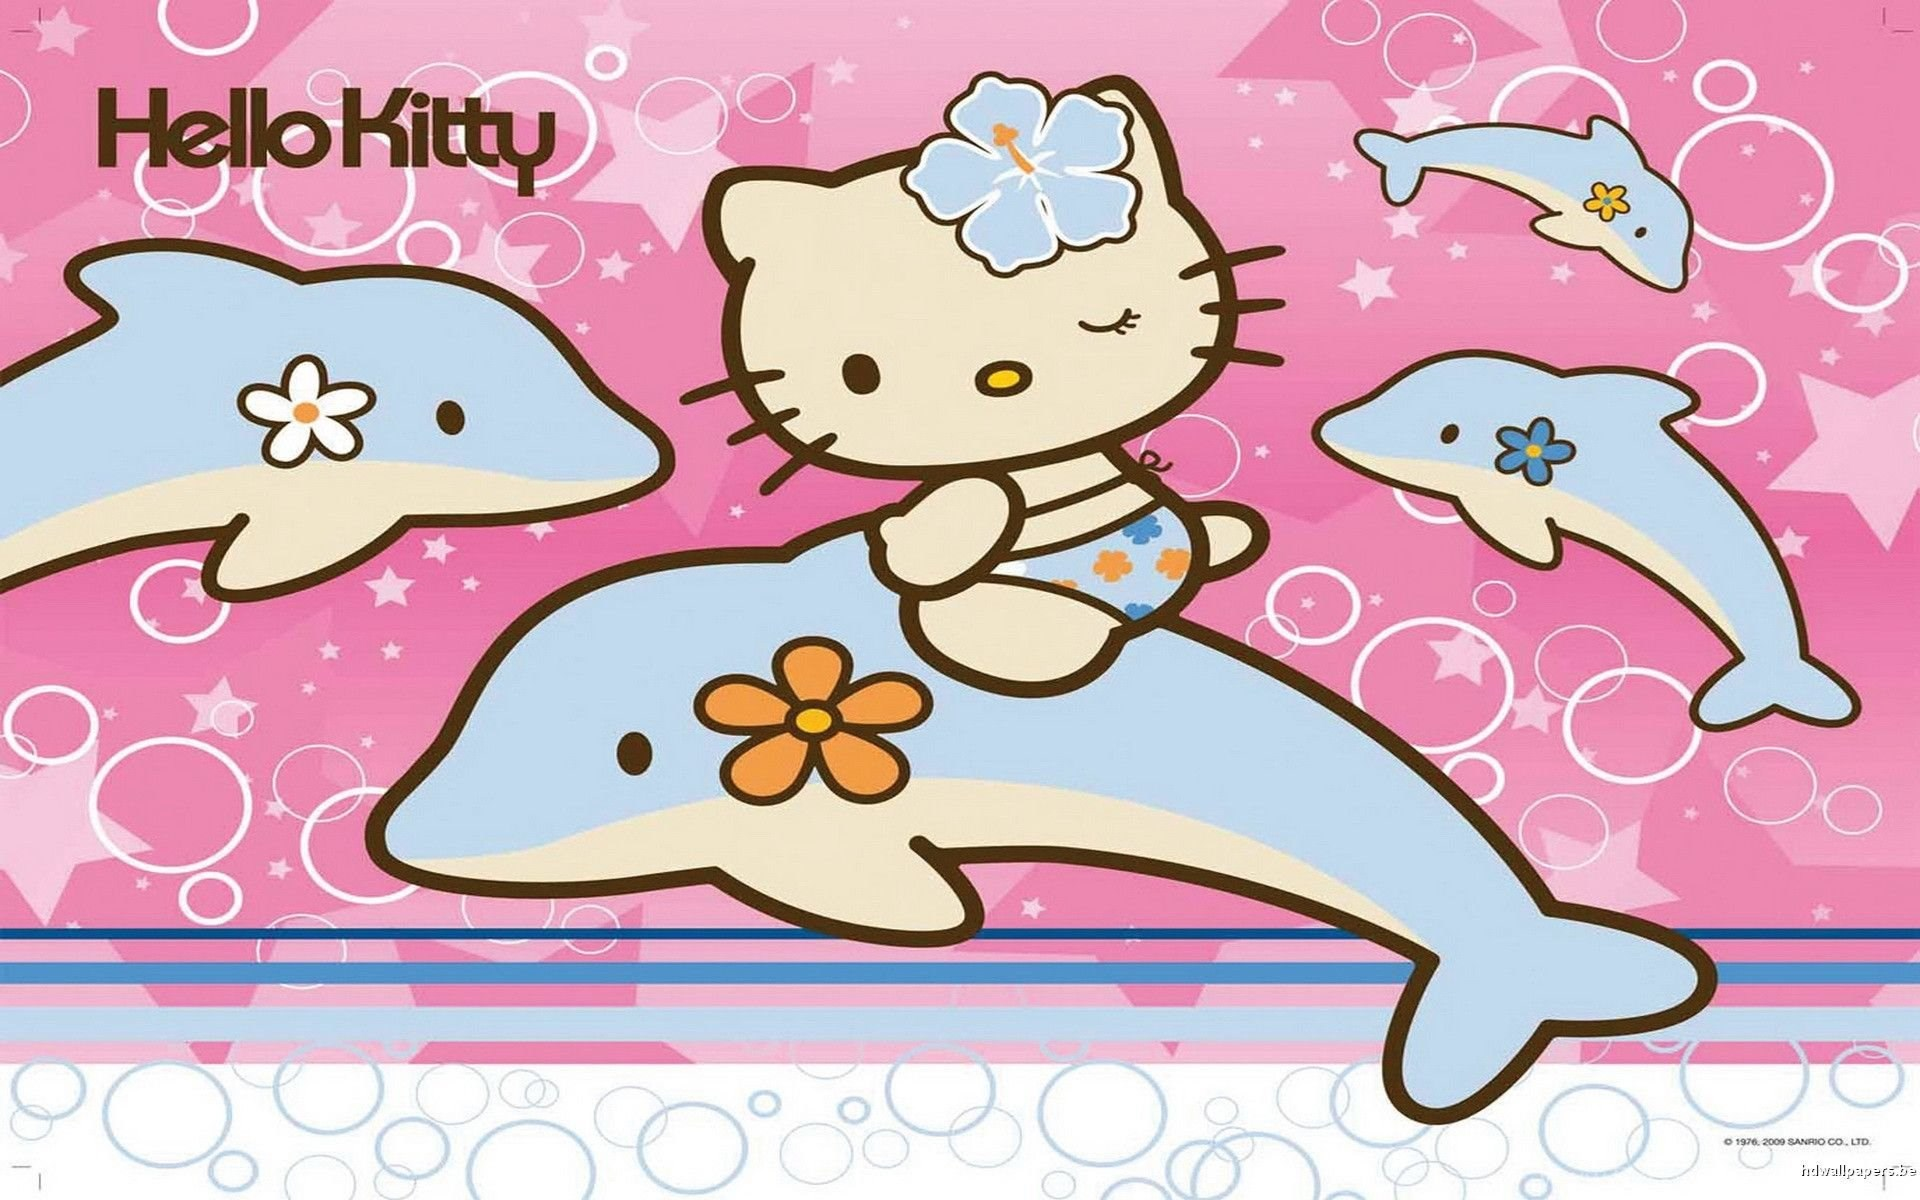 Good Wallpaper Hello Kitty Cute - 879913_hello-kitty-cute-image-backgrounds-wallpapers-cave_1920x1200_h  Trends_659766.jpg